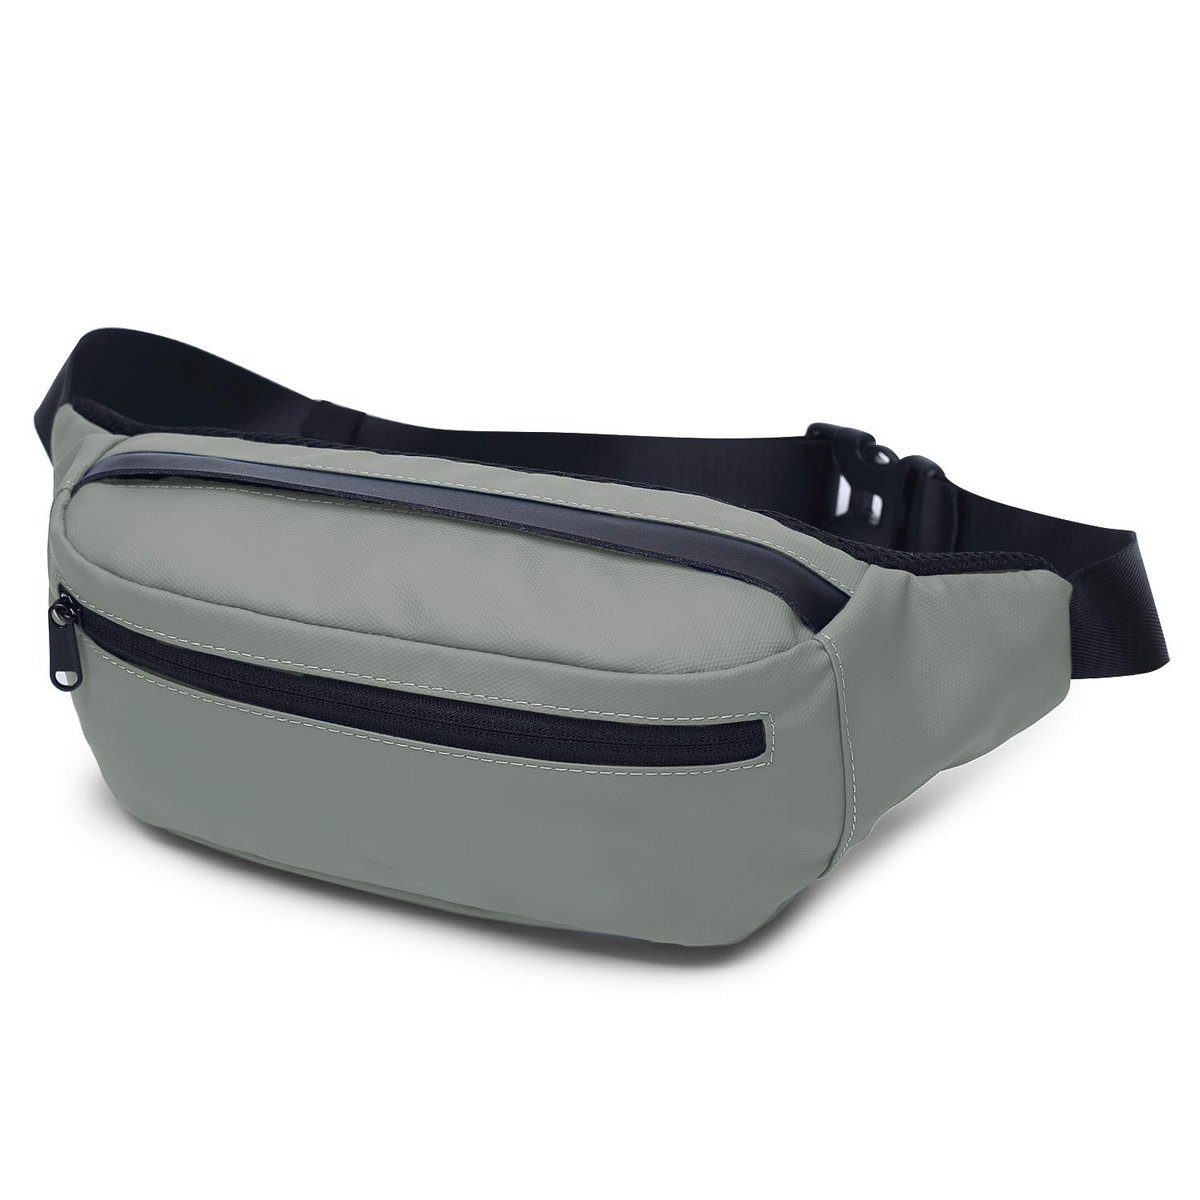 😁Hello, this is Vince from Chaumetbag. Would like to share Fashion design #waistbags for your outdoor sports.If you are interested, please kindly contact vince@chaumetbag.com#wasitbag #fannypacks #funnypack #waterproofbags #outdoors #outdoorbags #beltbags #sportsbags